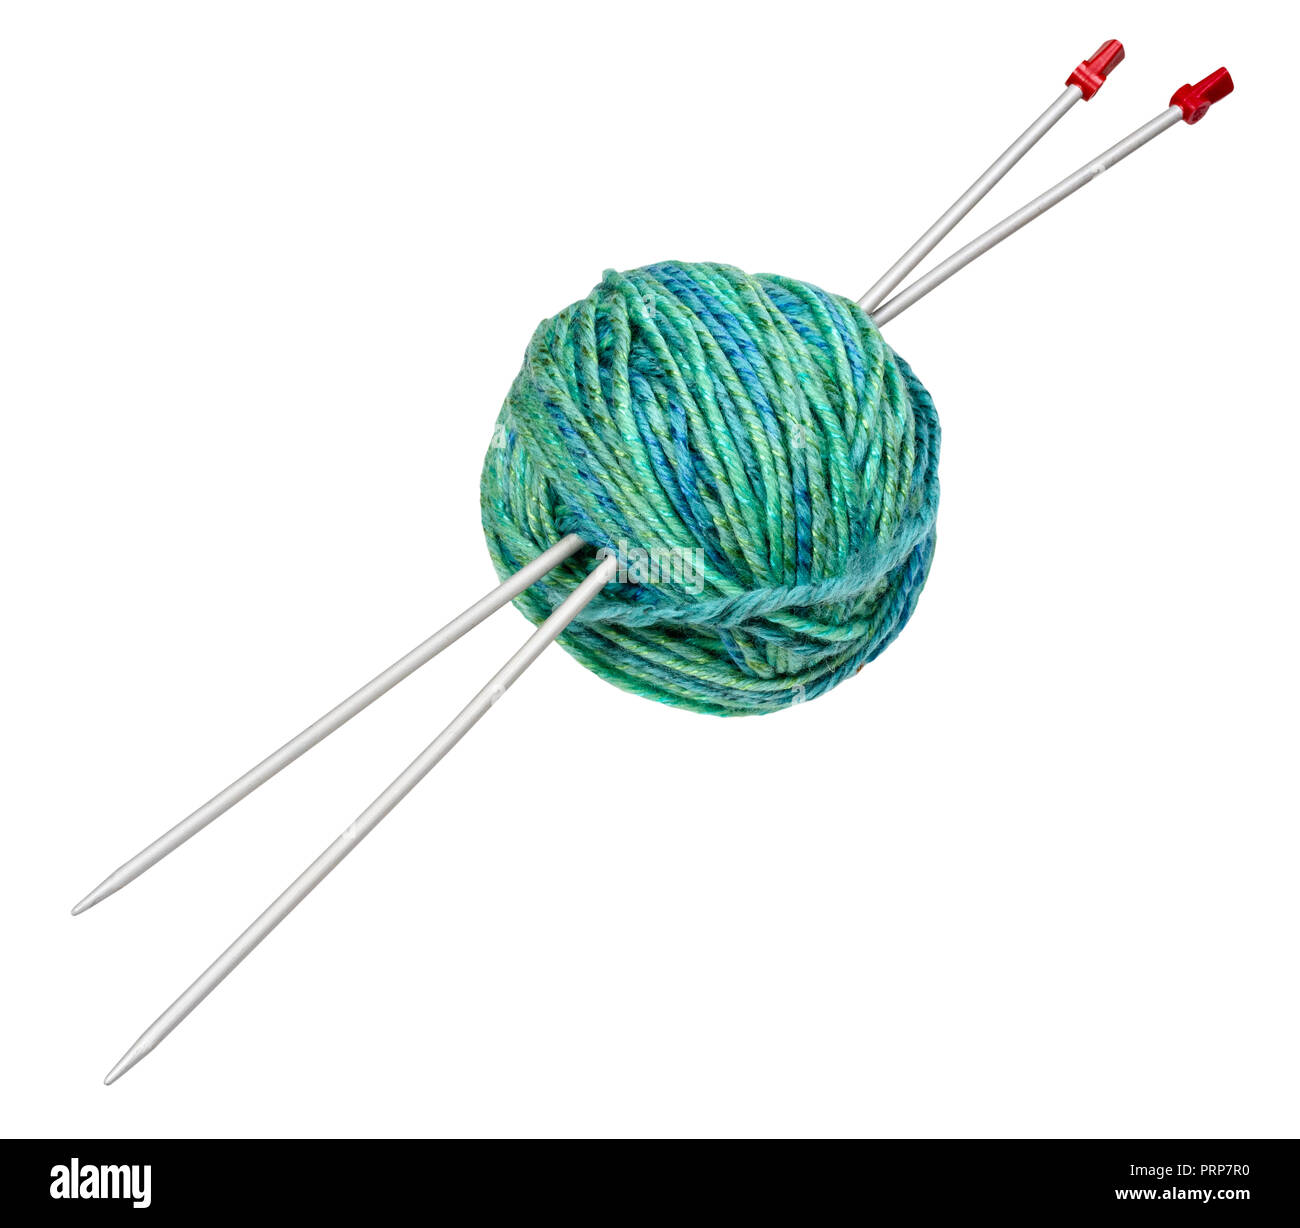 ball of green yarn with knitting needles cut out on white backgroubd - Stock Image